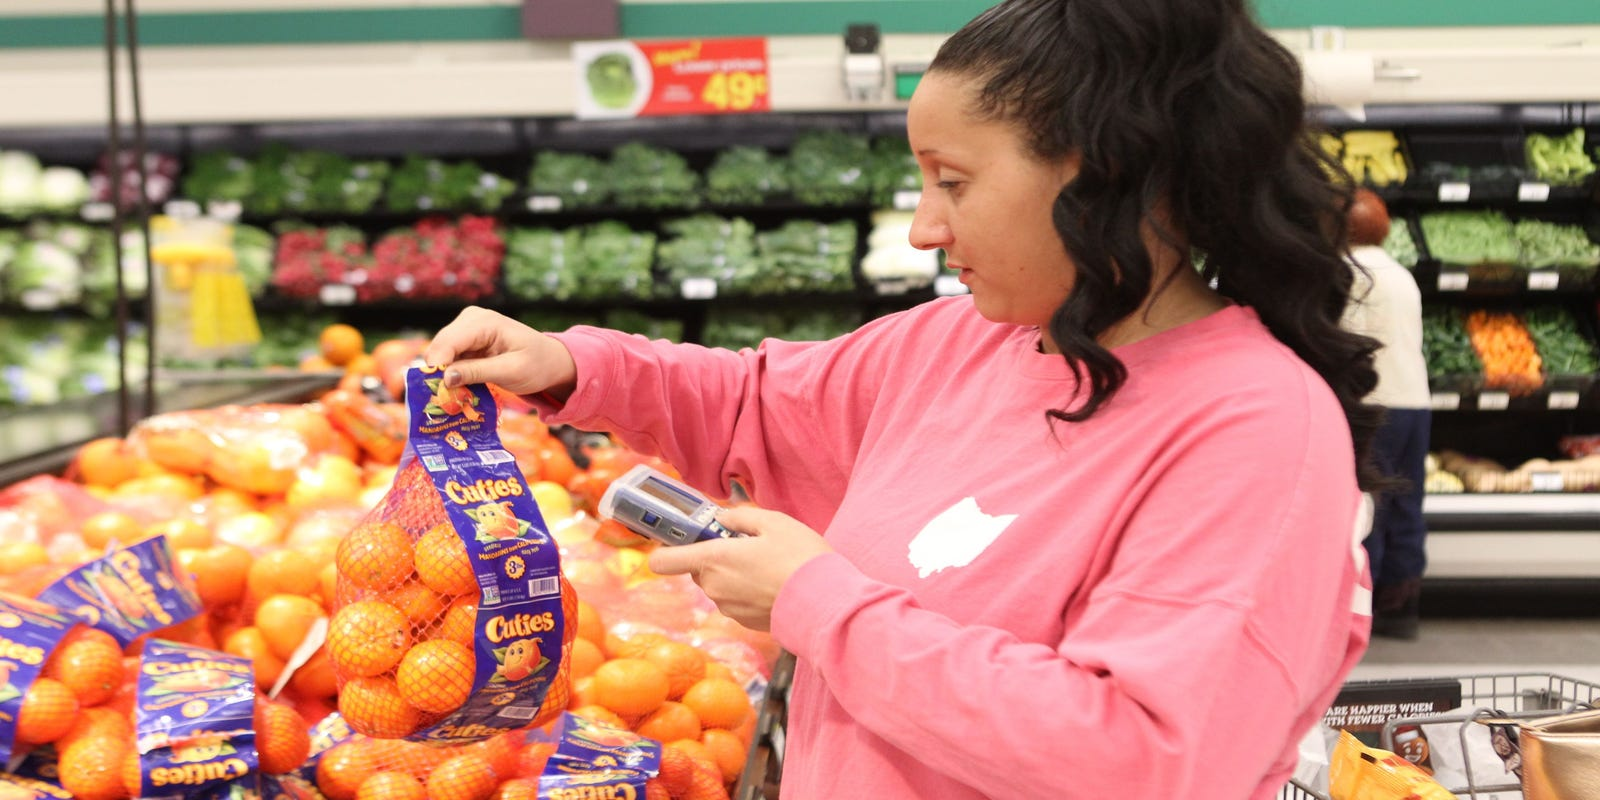 Kroger partners with UK online grocer Ocado, plans automated